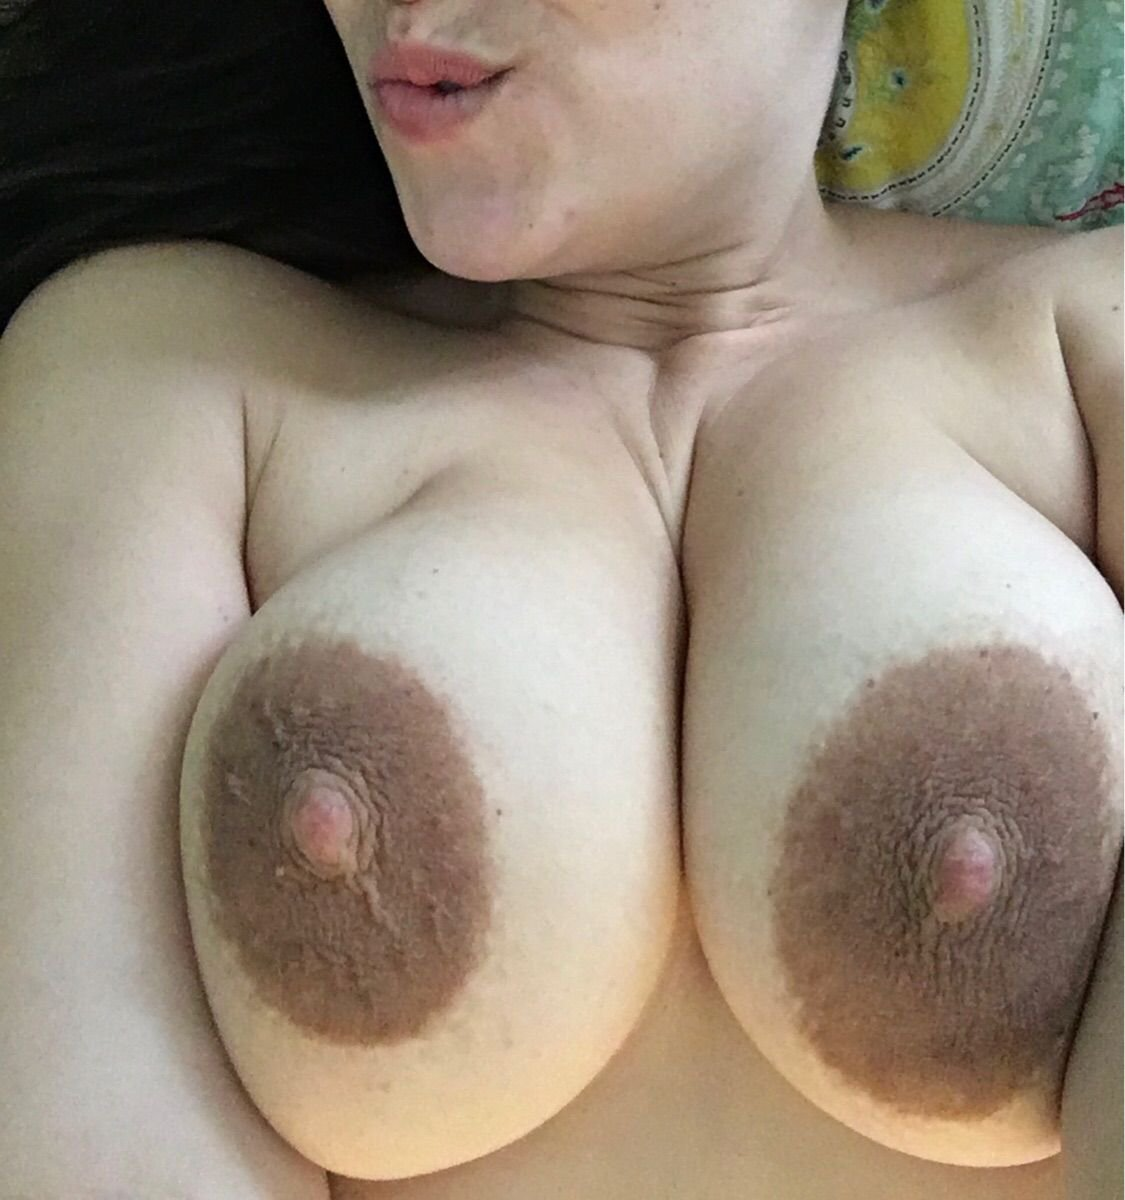 Pussy boobs breast nipple zuzanna birthday